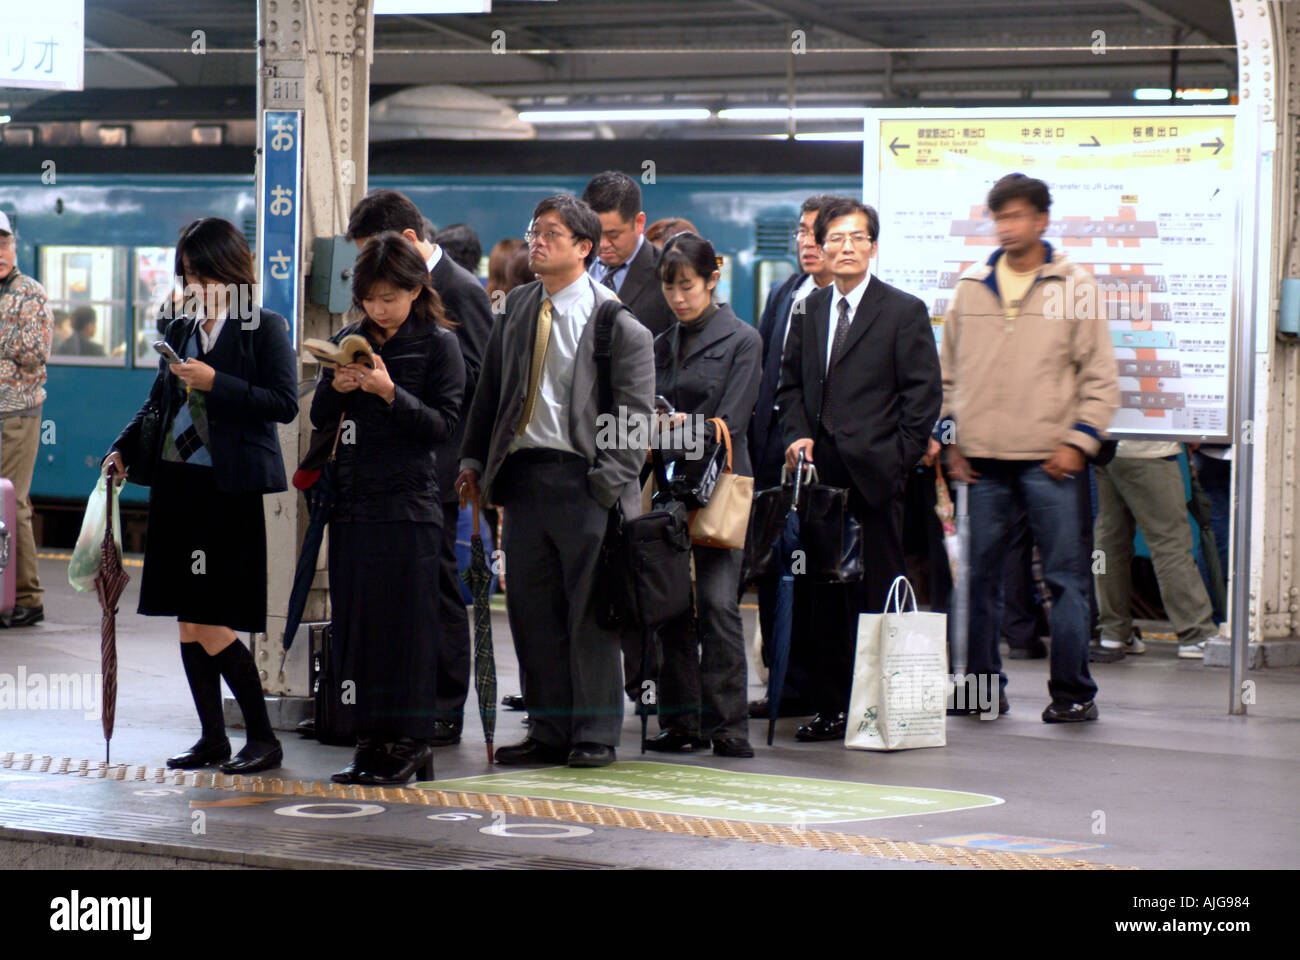 People waiting in a queue on a railway platform Osaka Japan - Stock Image